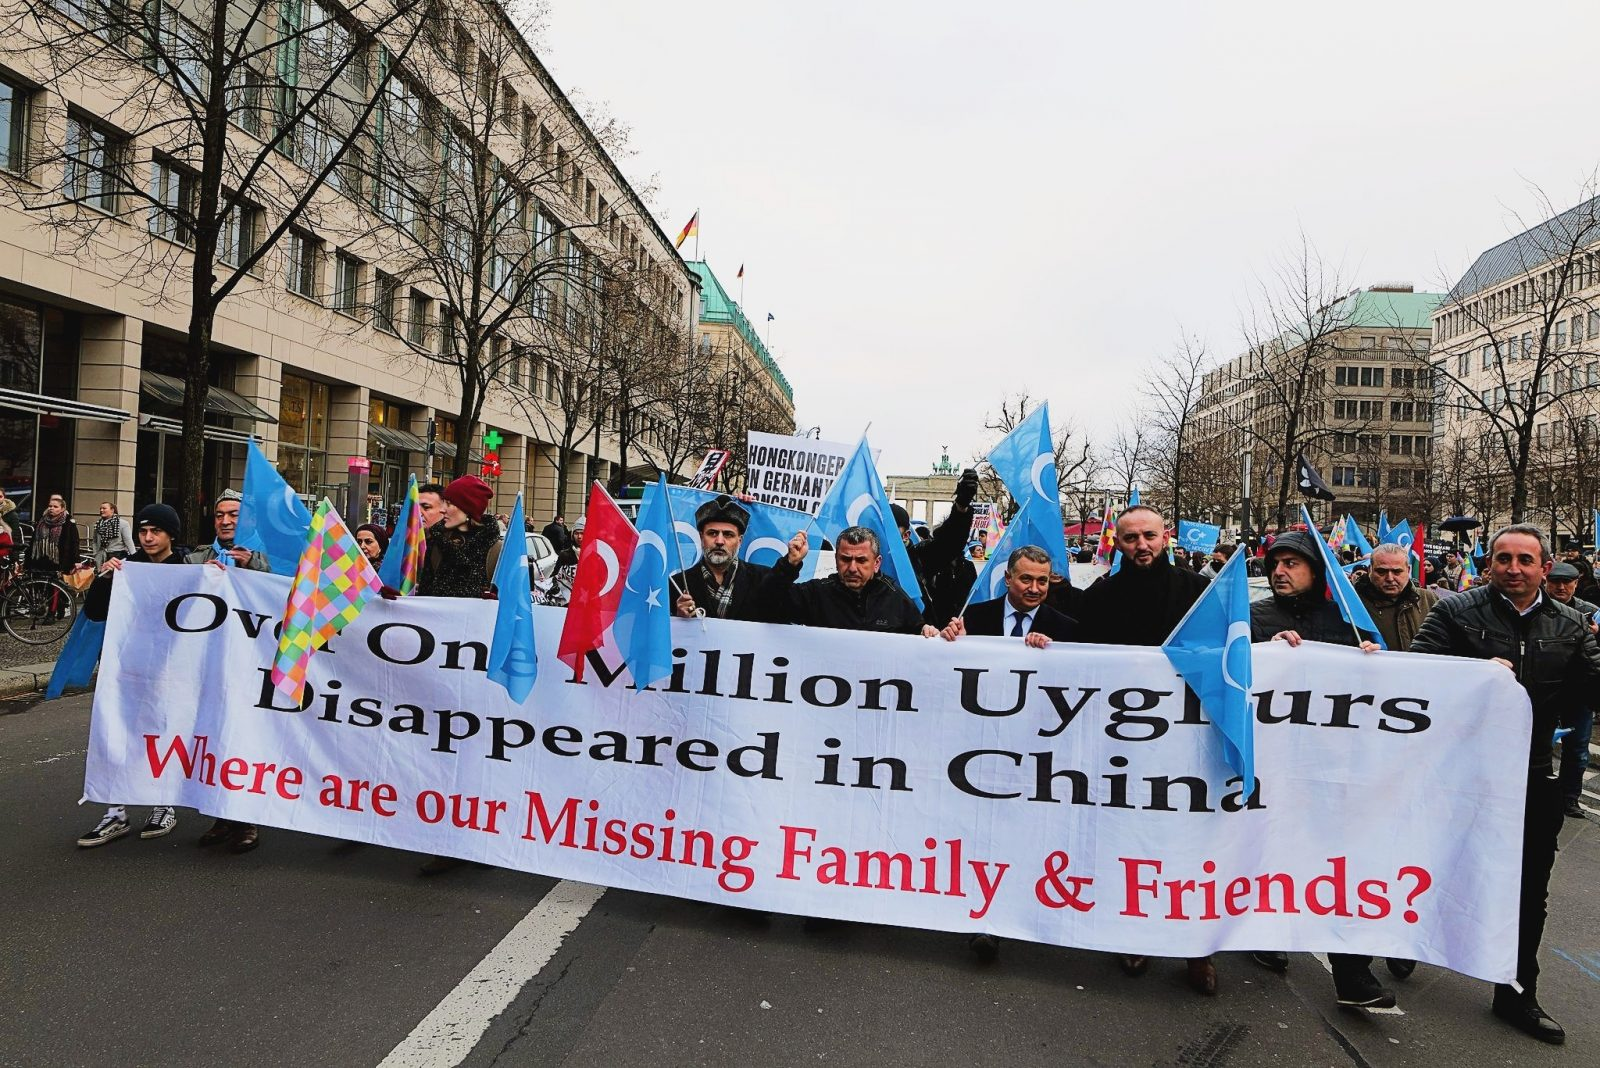 March against Uyghur genocide